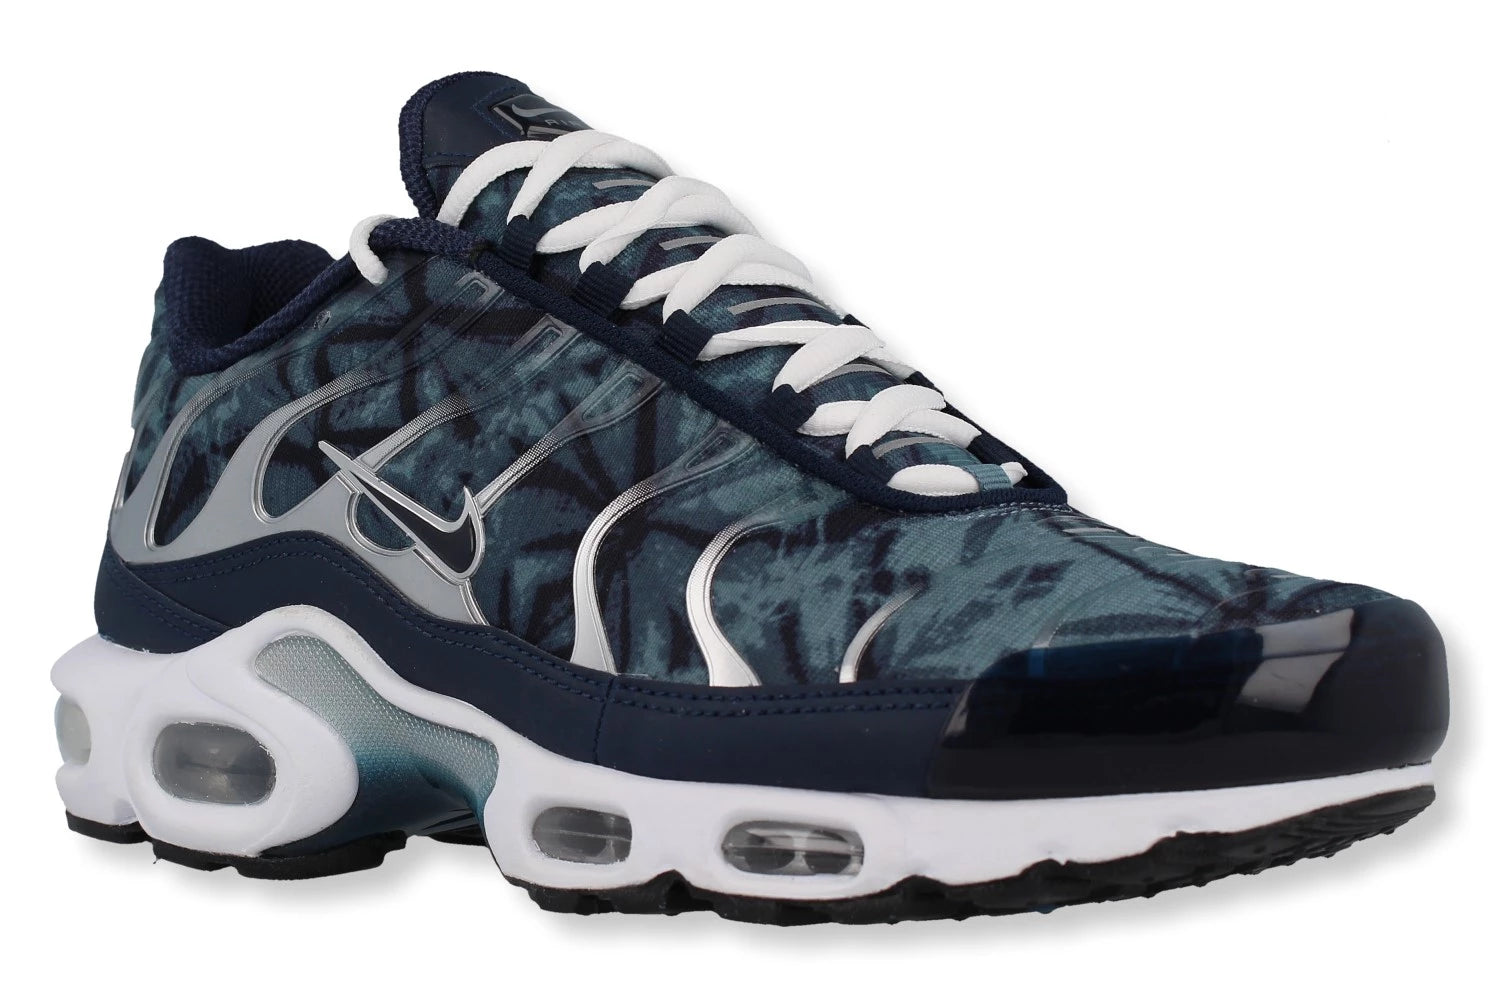 Air Max Plus OG TN